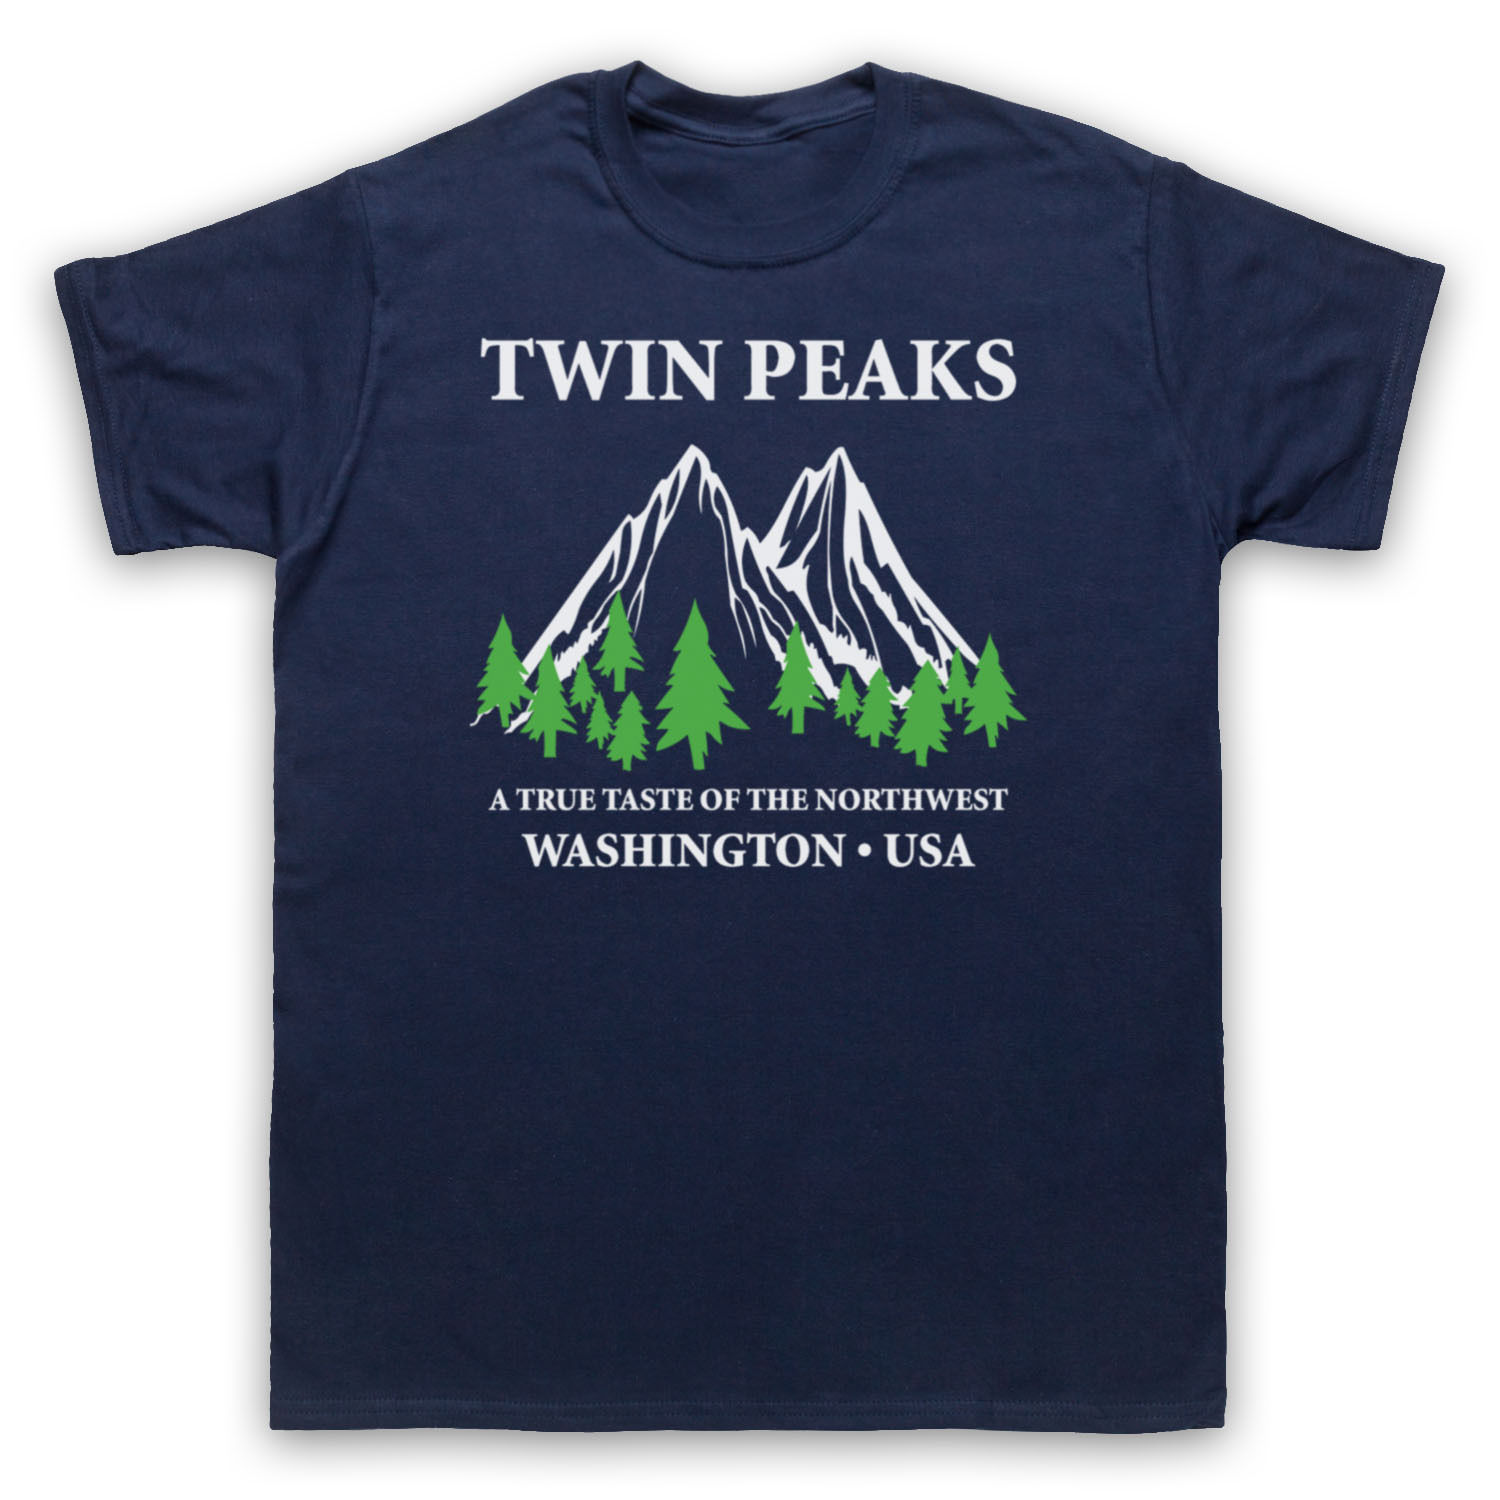 TWIN PEAKS A TRUE TASTE OF THE NORTHWEST UNOFFICIAL T-SHIRT ADULTS & KIDS SIZES